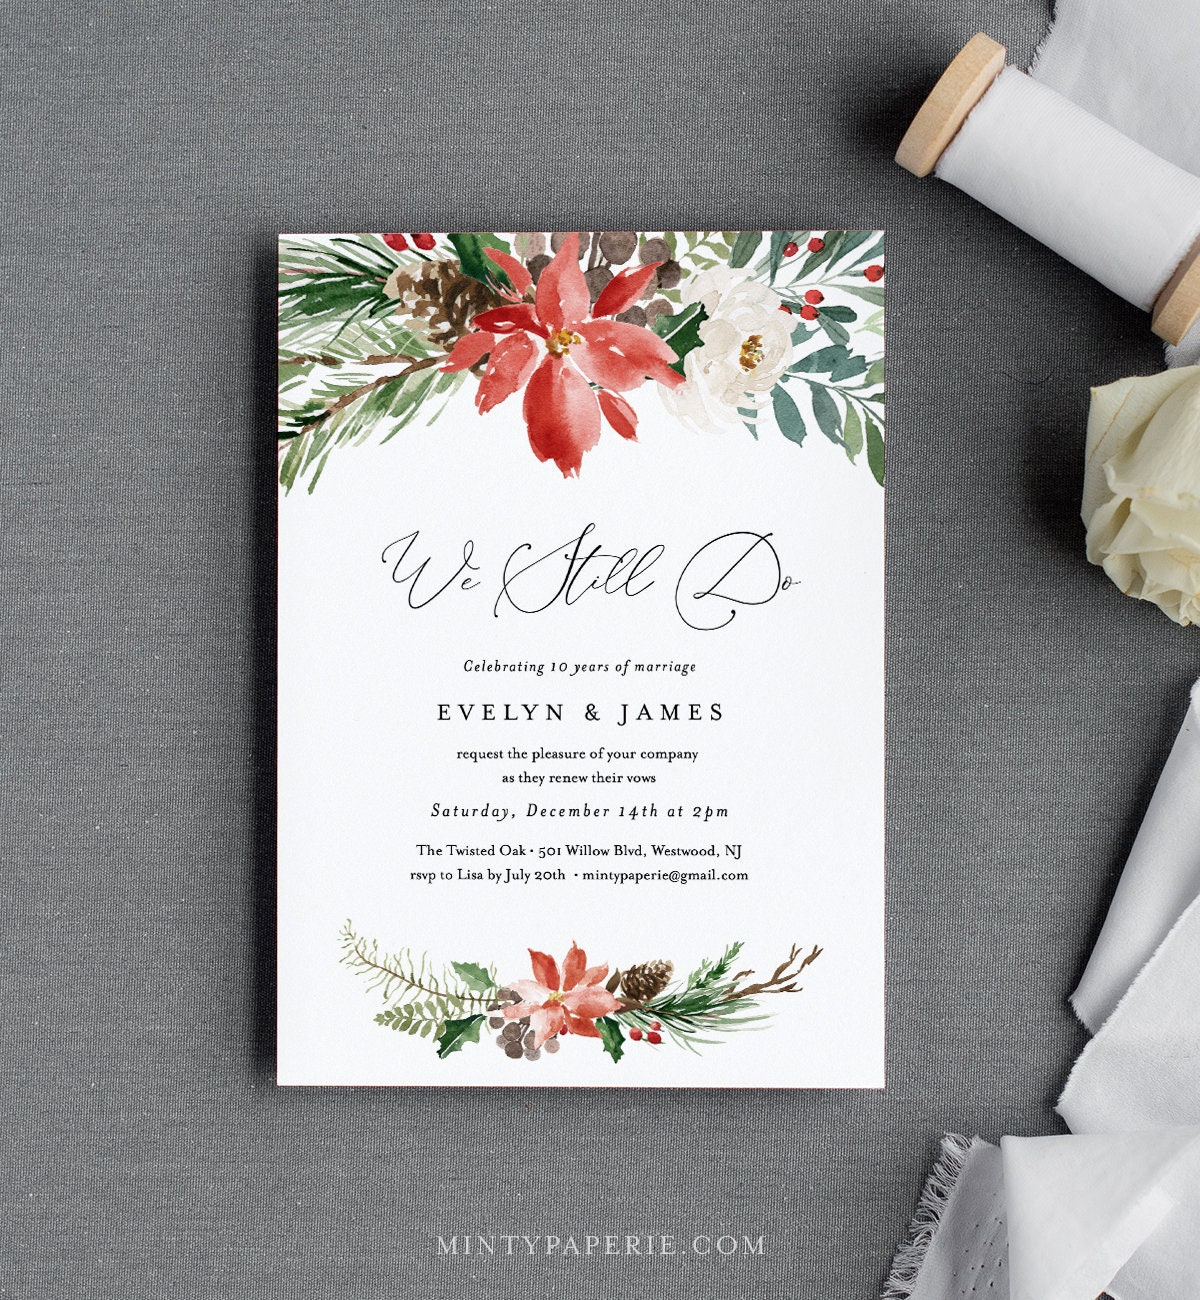 Winter Vow Renewal Invitation Template Anniversary Invite Holly